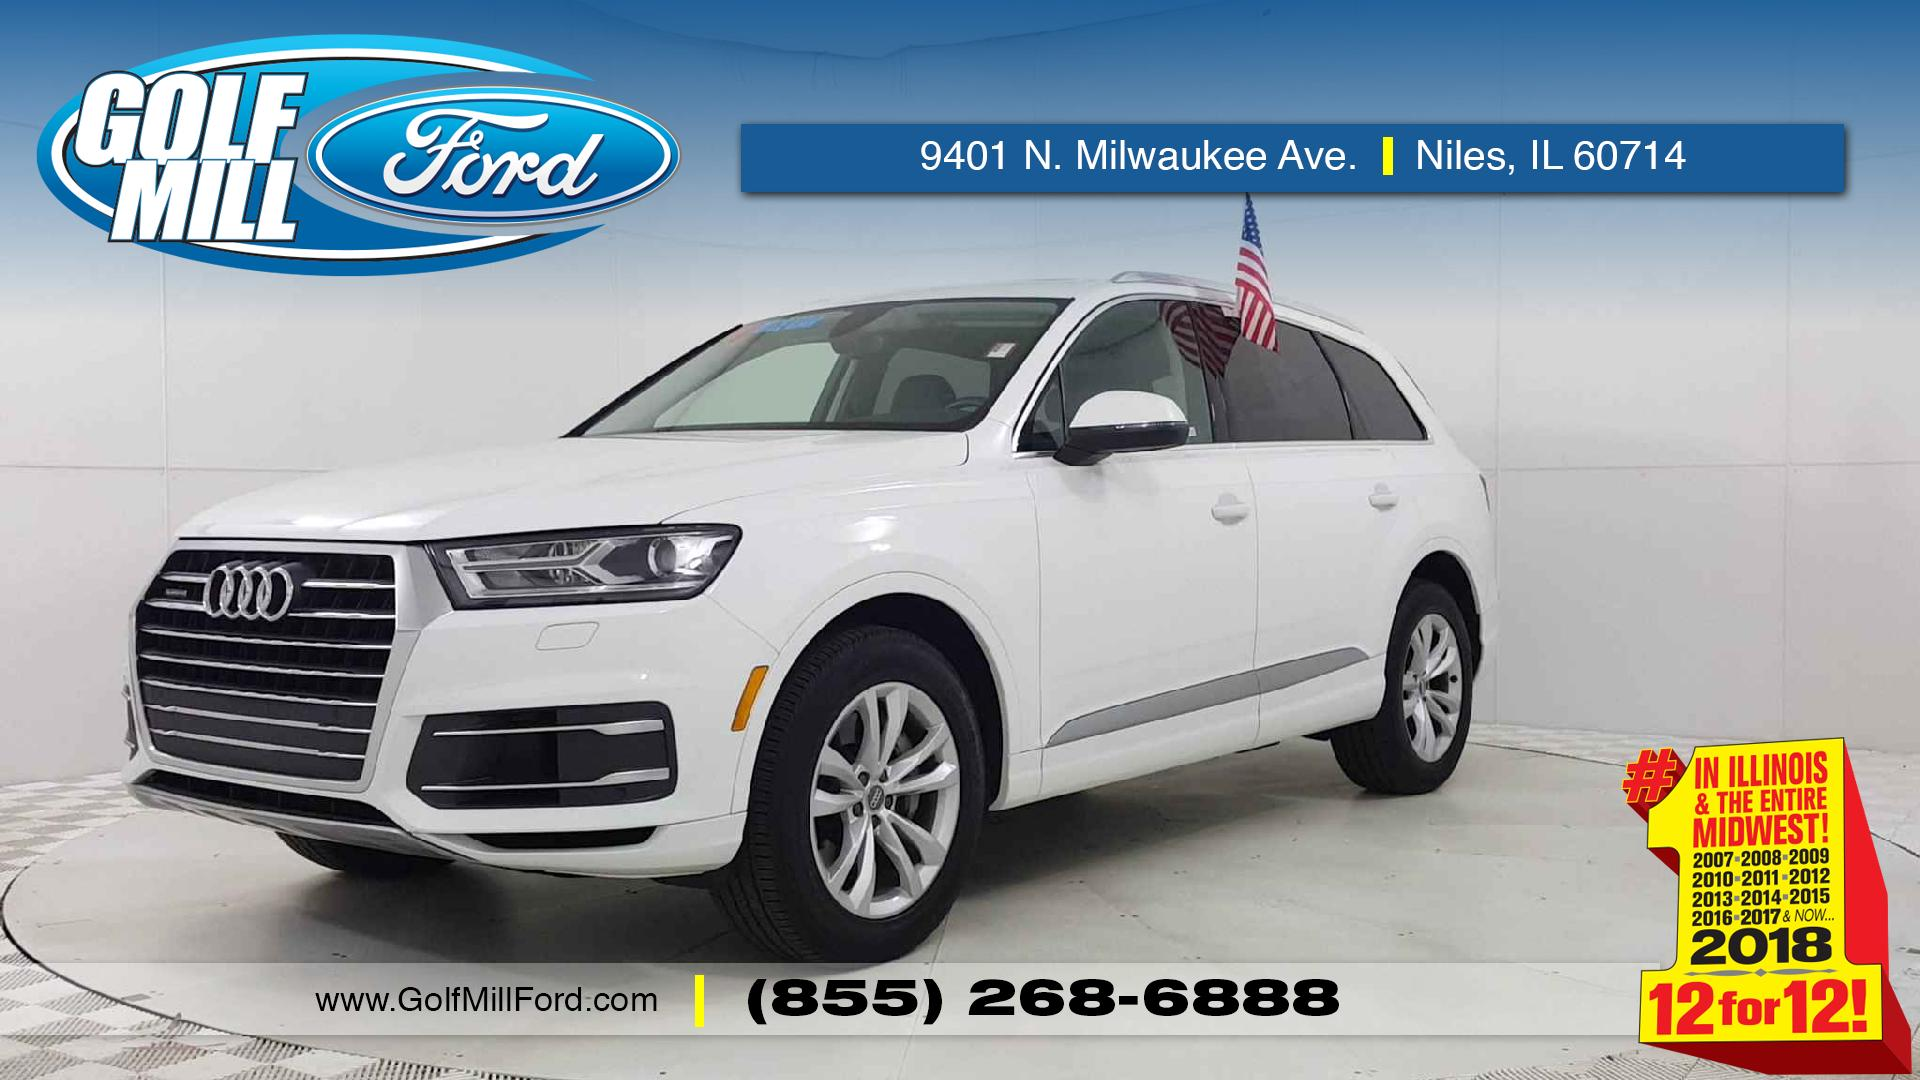 Used Vehicles for Sale in Niles IL Golf Mill Ford